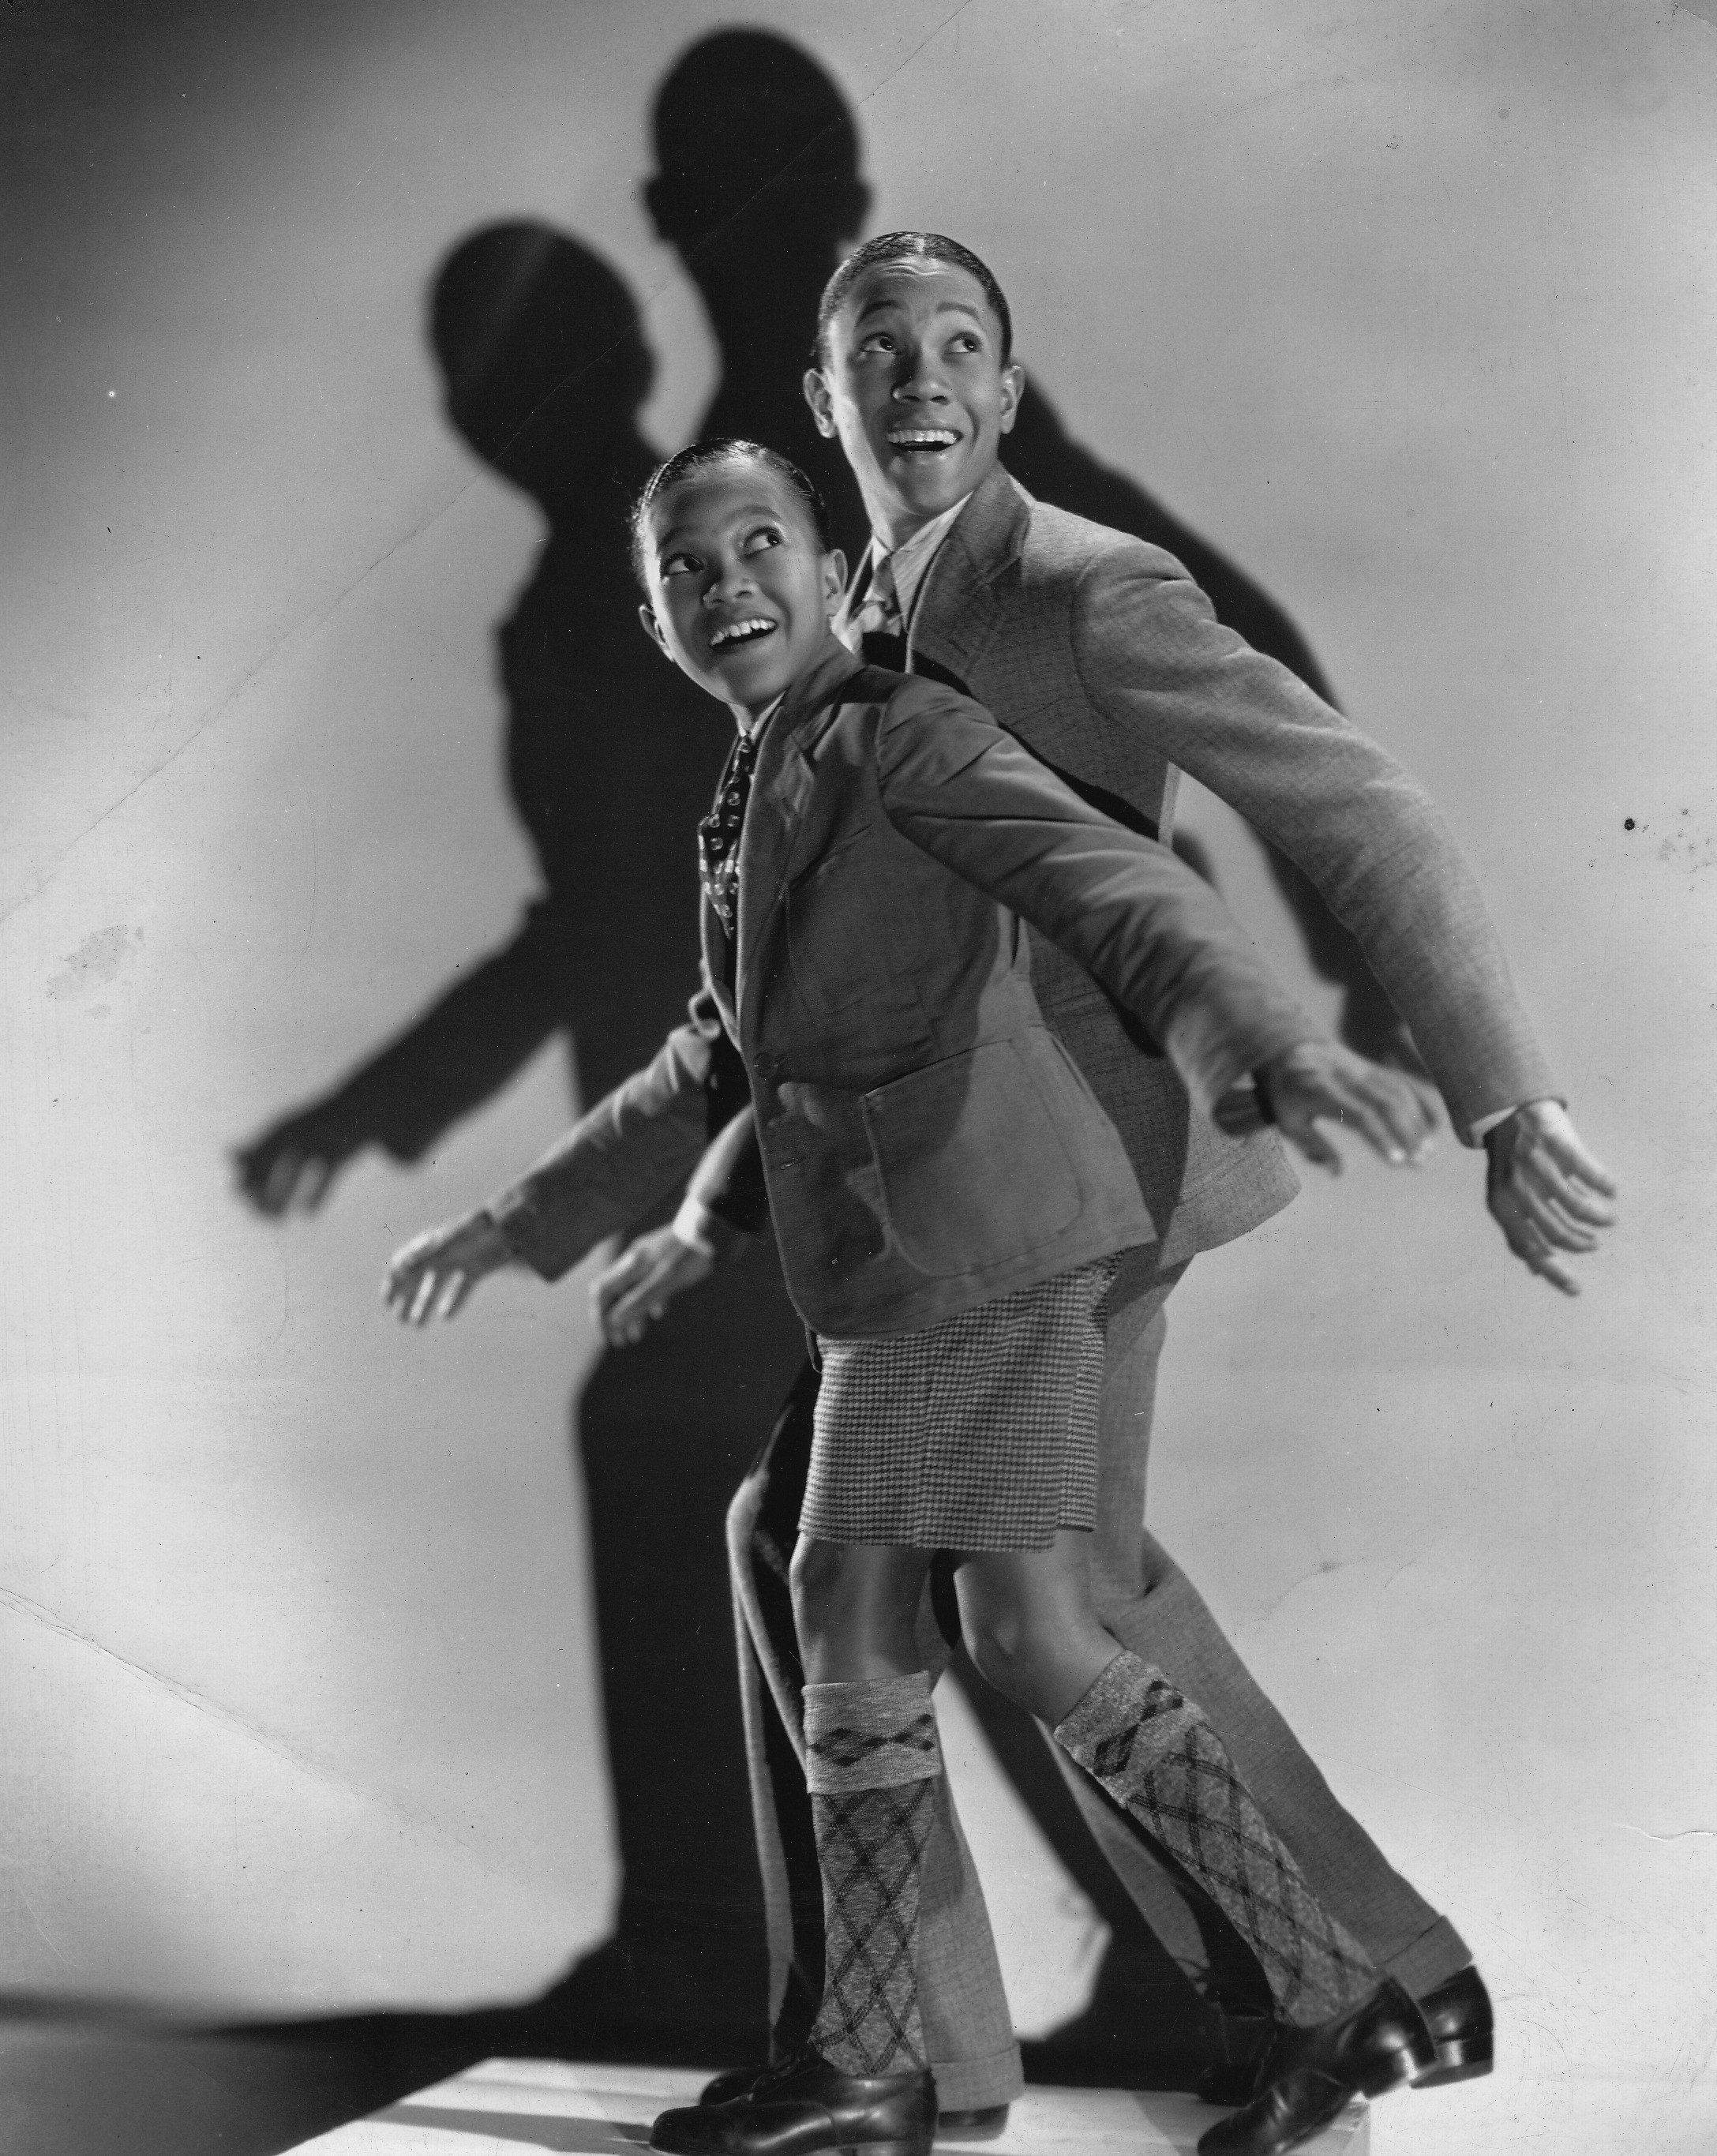 """Dancers Harold Nicholas and Fayard Nicholas, The Nicholas Brothers, in a still from the film """"Big Broadcast of 1935"""" 